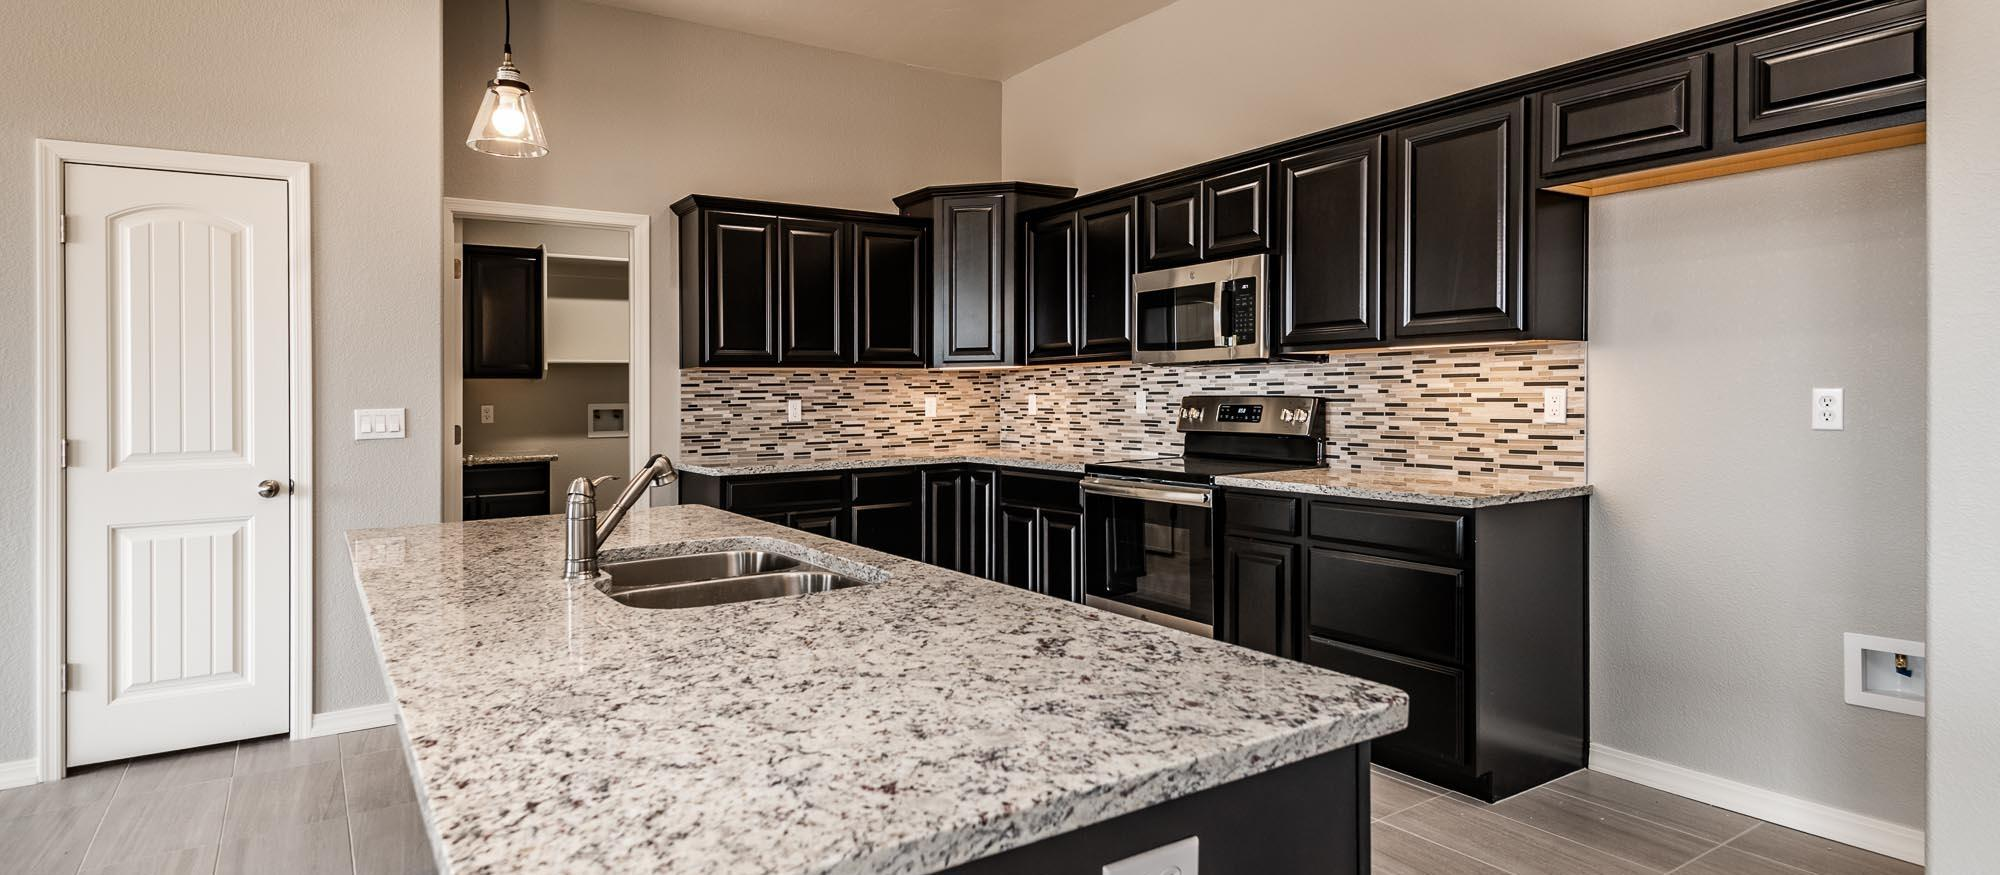 Kitchen featured in the Legacy 2374 By Angle Homes in Kingman-Lake Havasu City, AZ